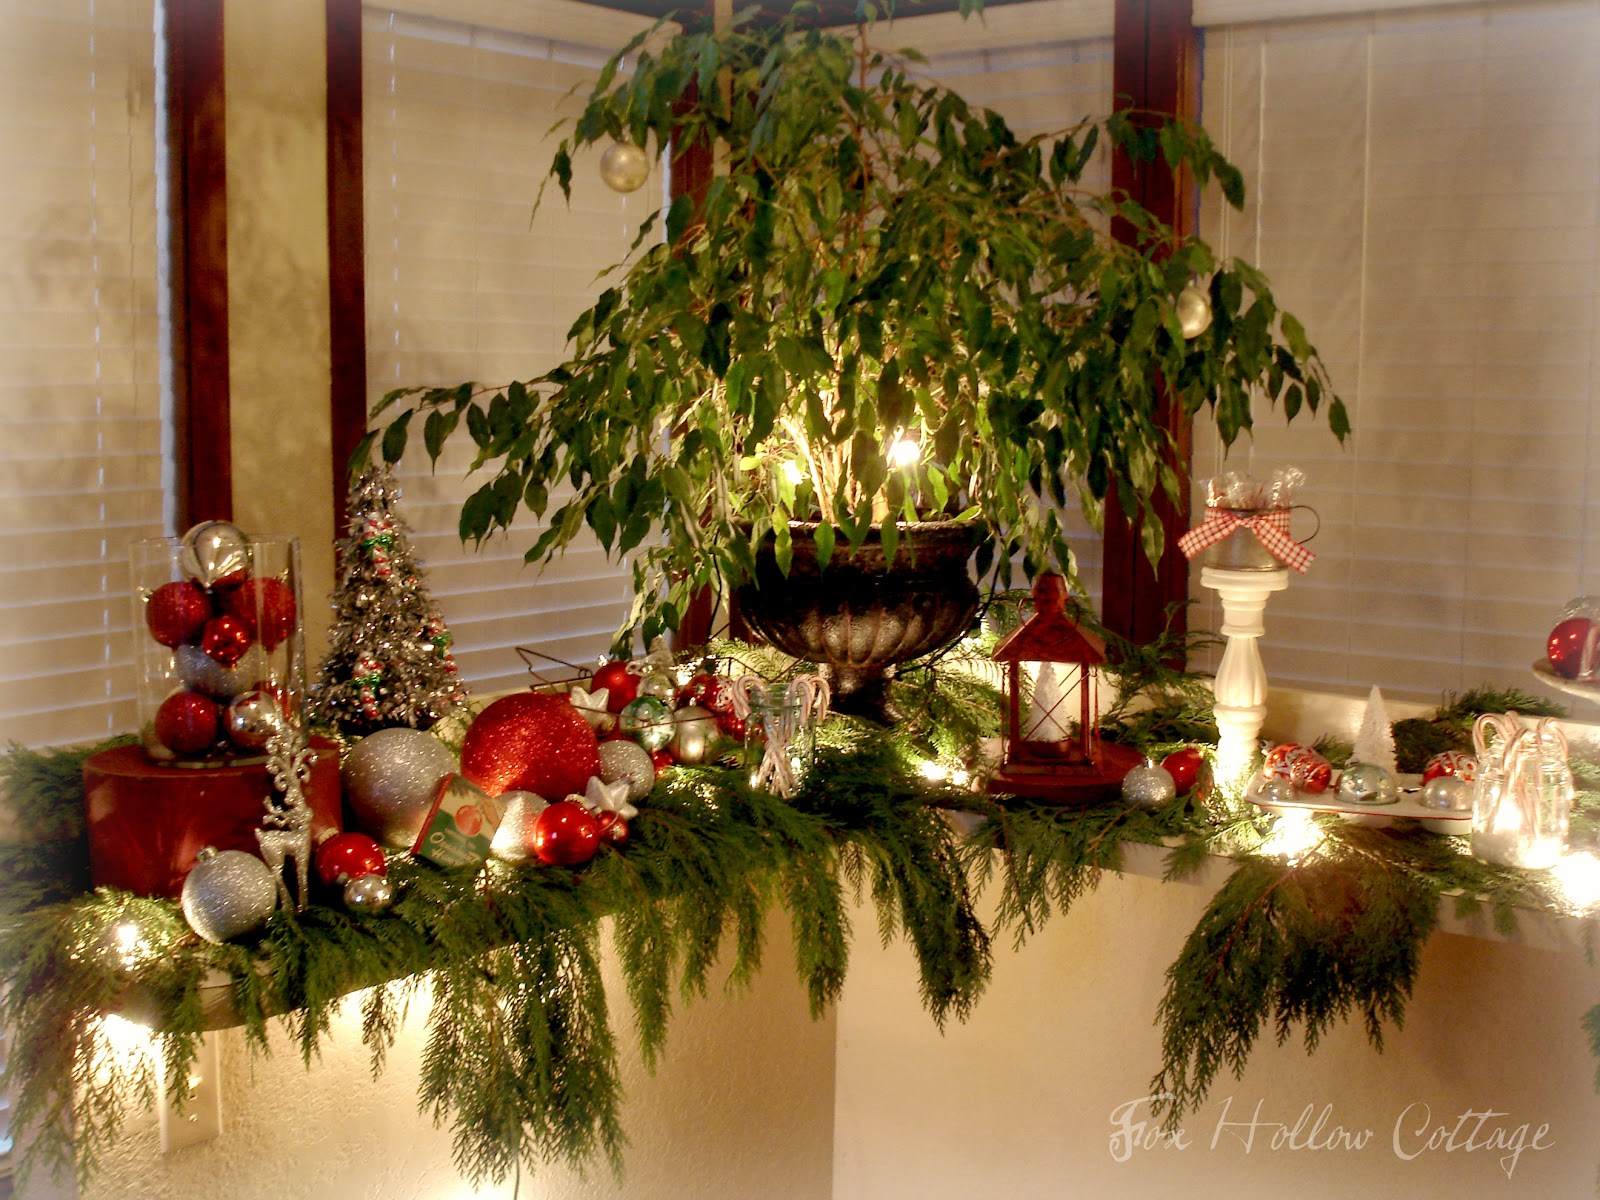 Thrifty Christmas Decorating With Cedar Boughs